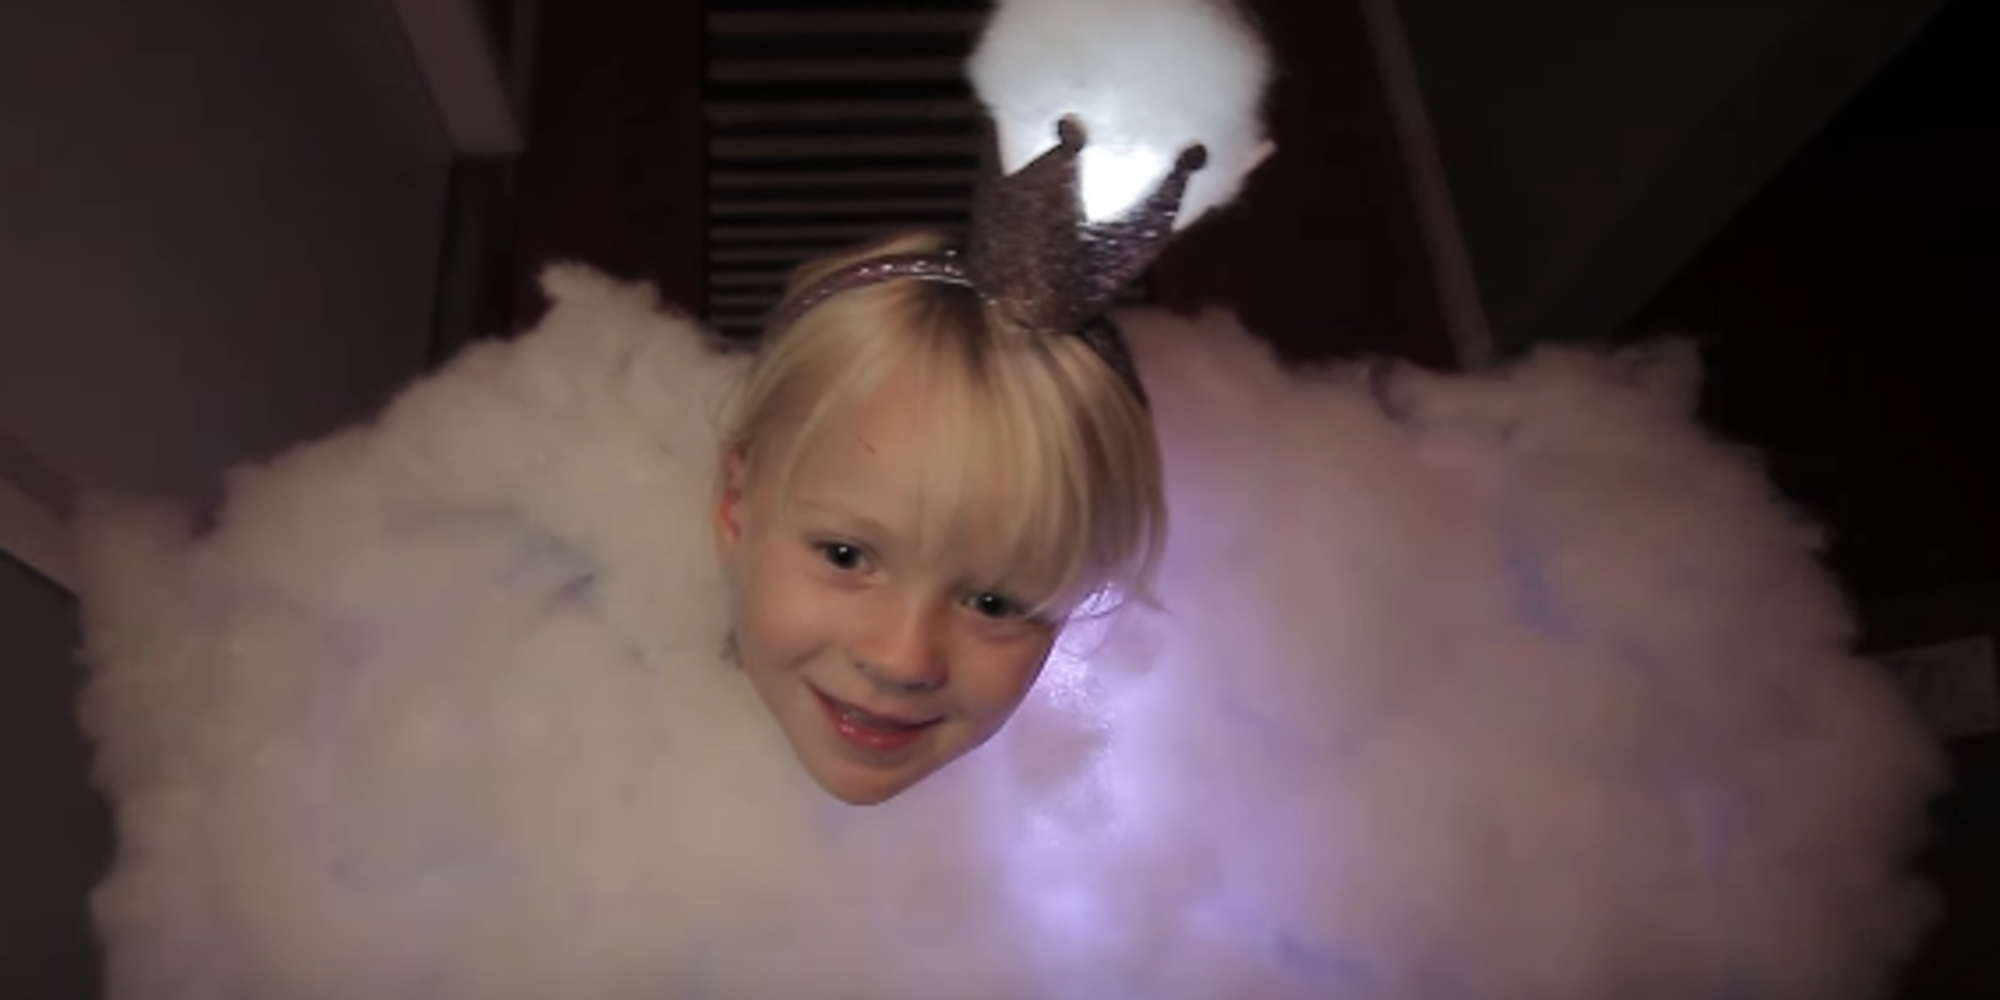 You've Gotta See This Kid's Light-Up Cloud Costume To Believe It | Huffington Post